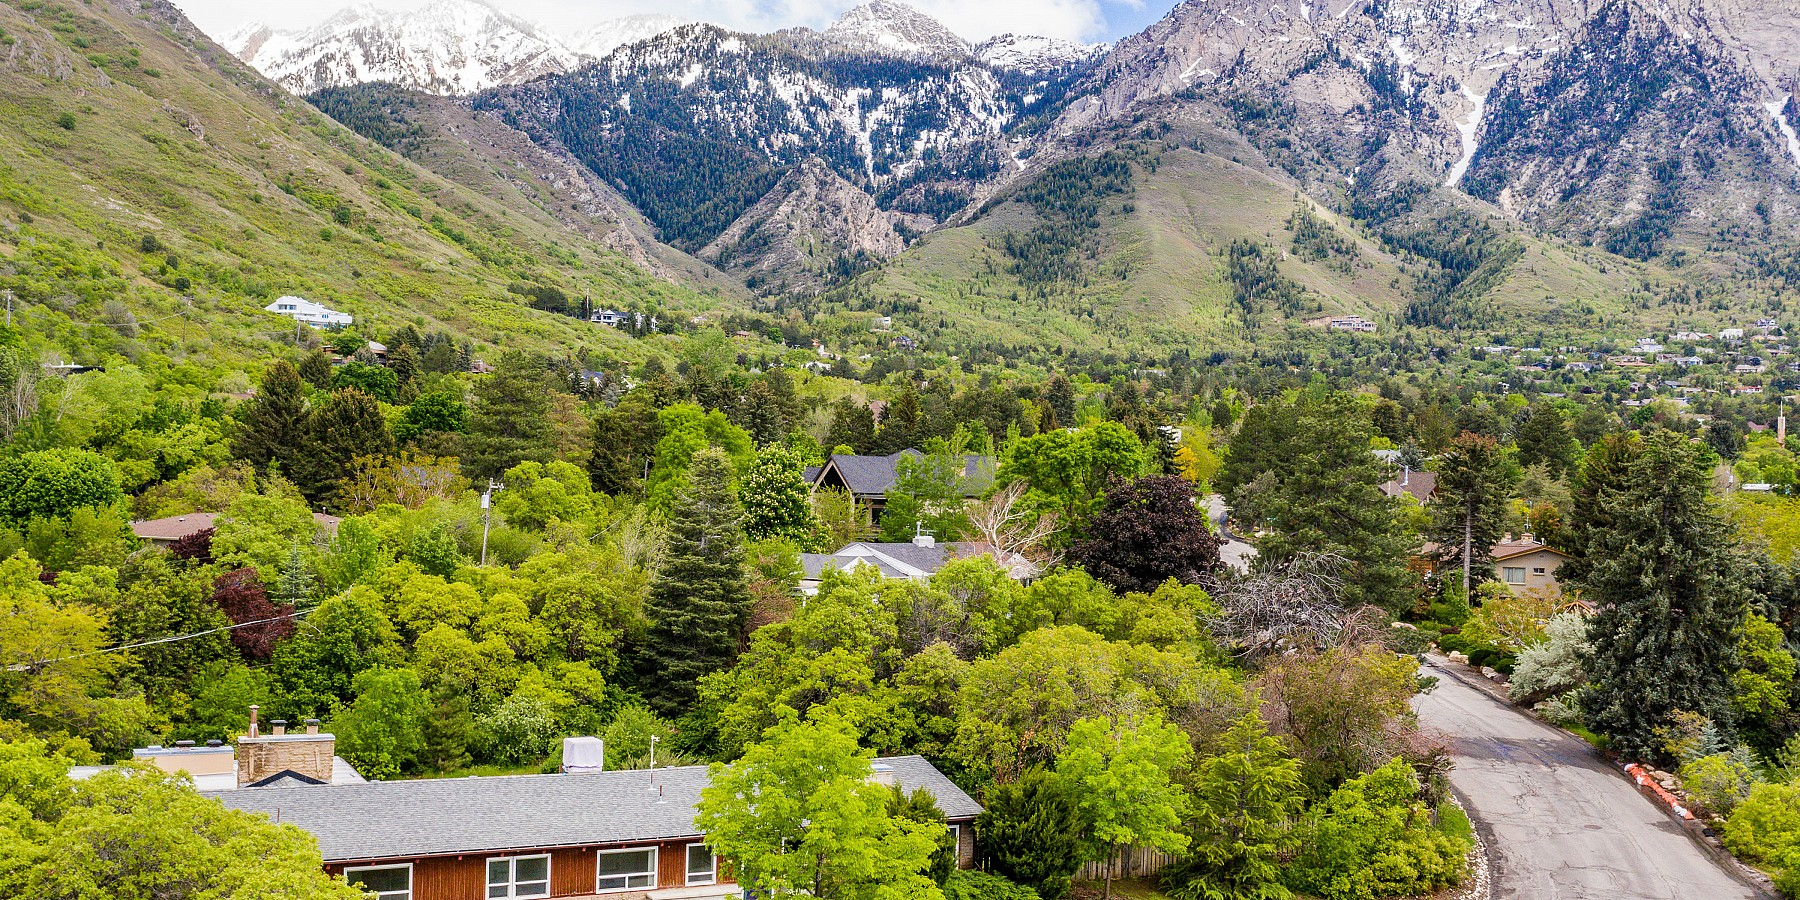 3925 S. Mount Olympus Way, Salt Lake City, UT 84124